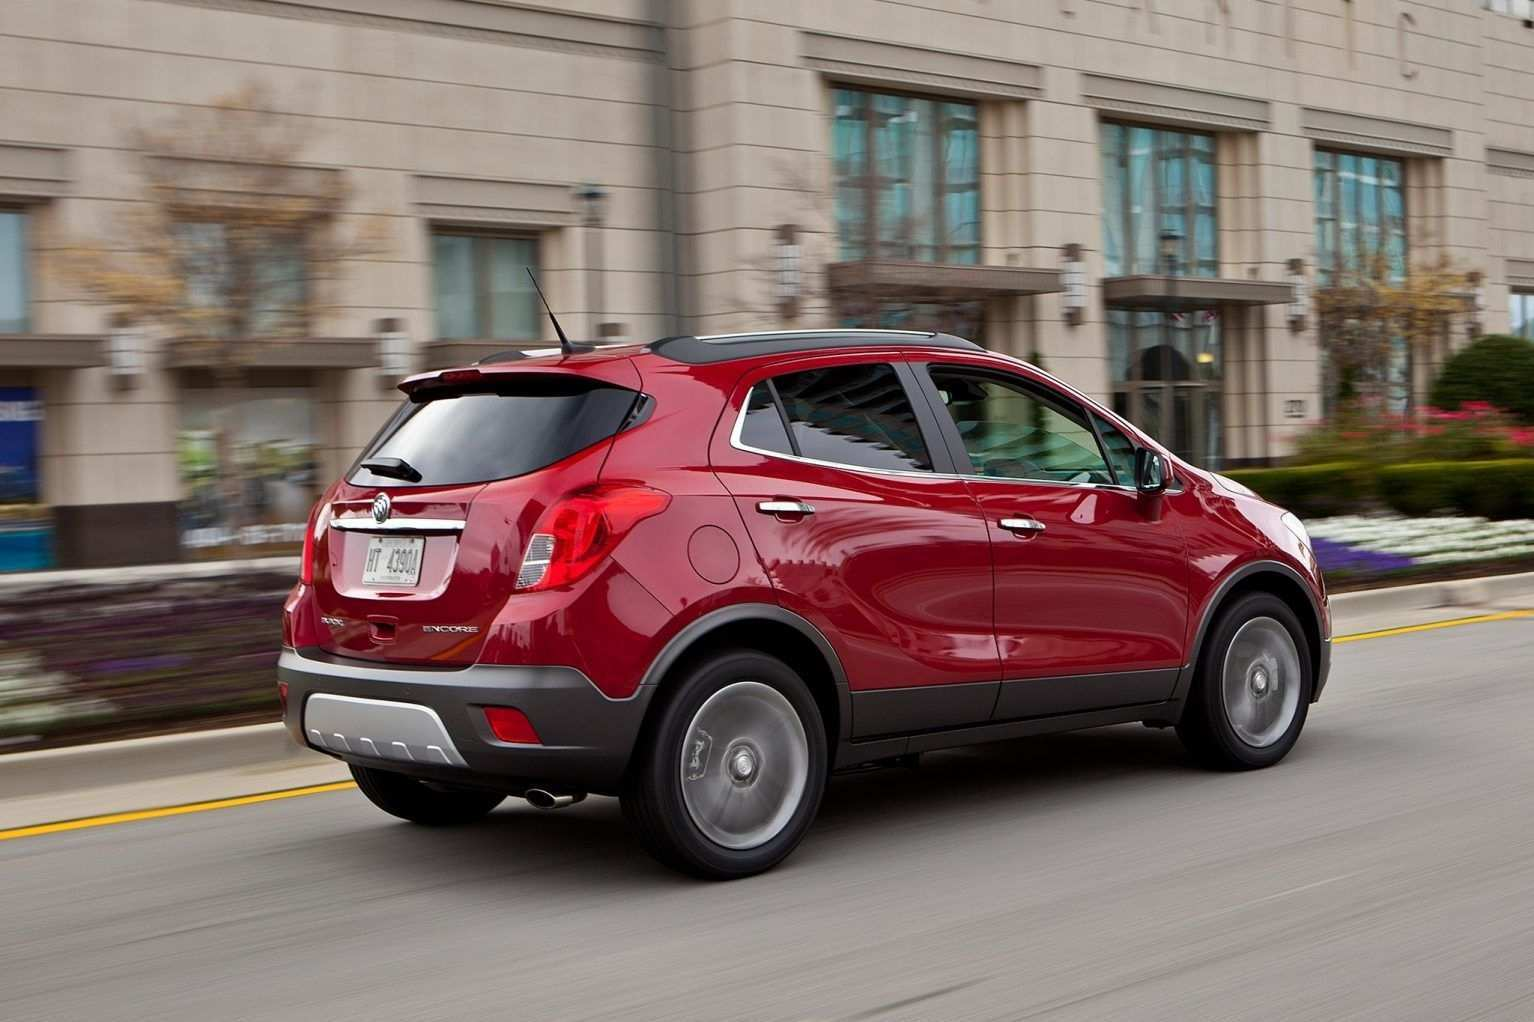 45 The 2019 Buick Encore Release Date Engine Redesign and Concept for 2019 Buick Encore Release Date Engine